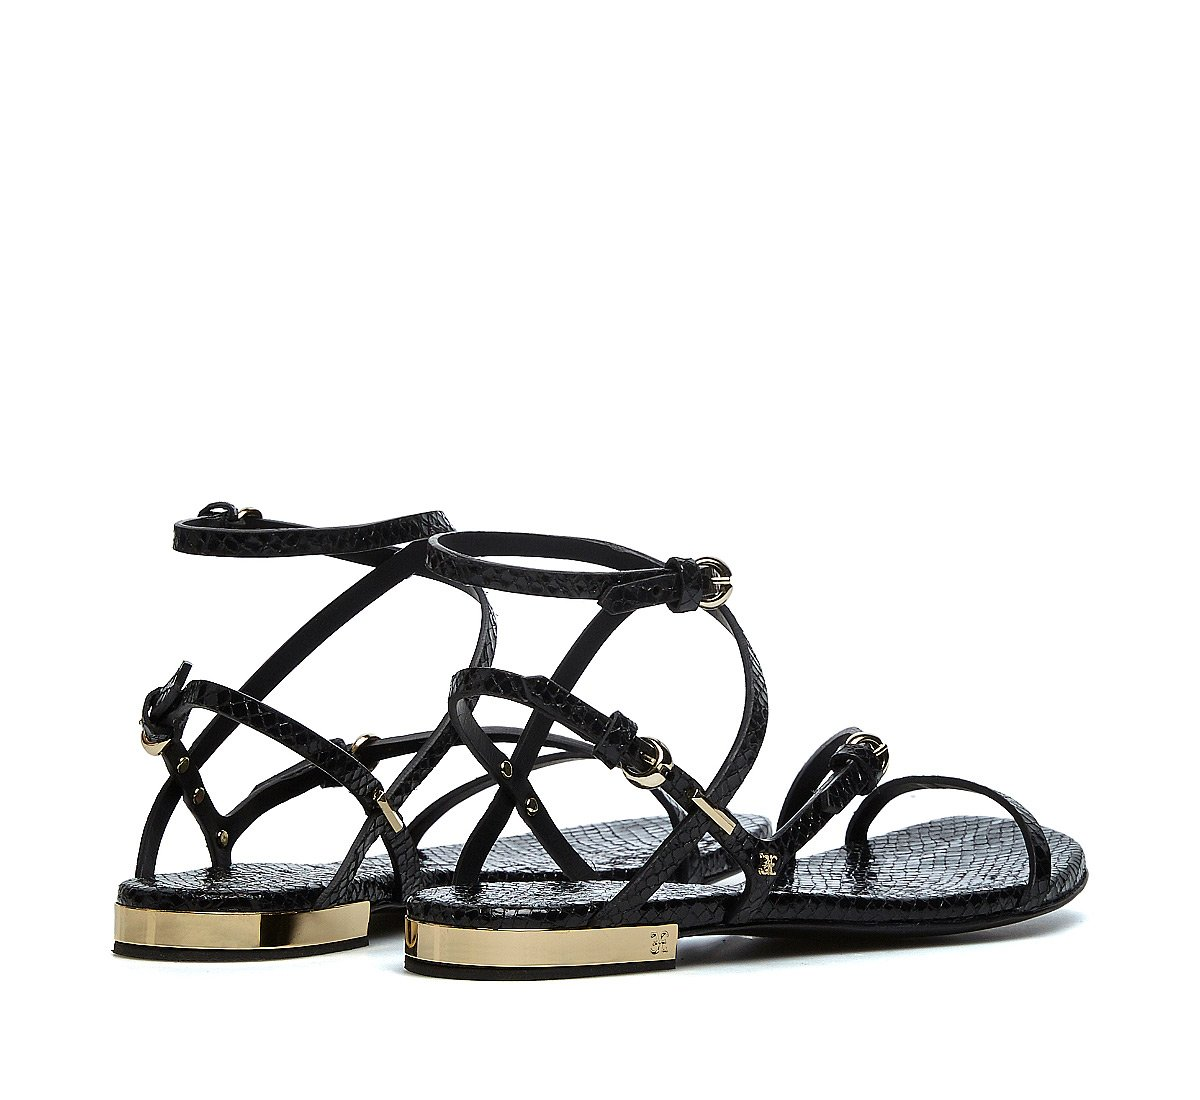 Reptile-effect sandals